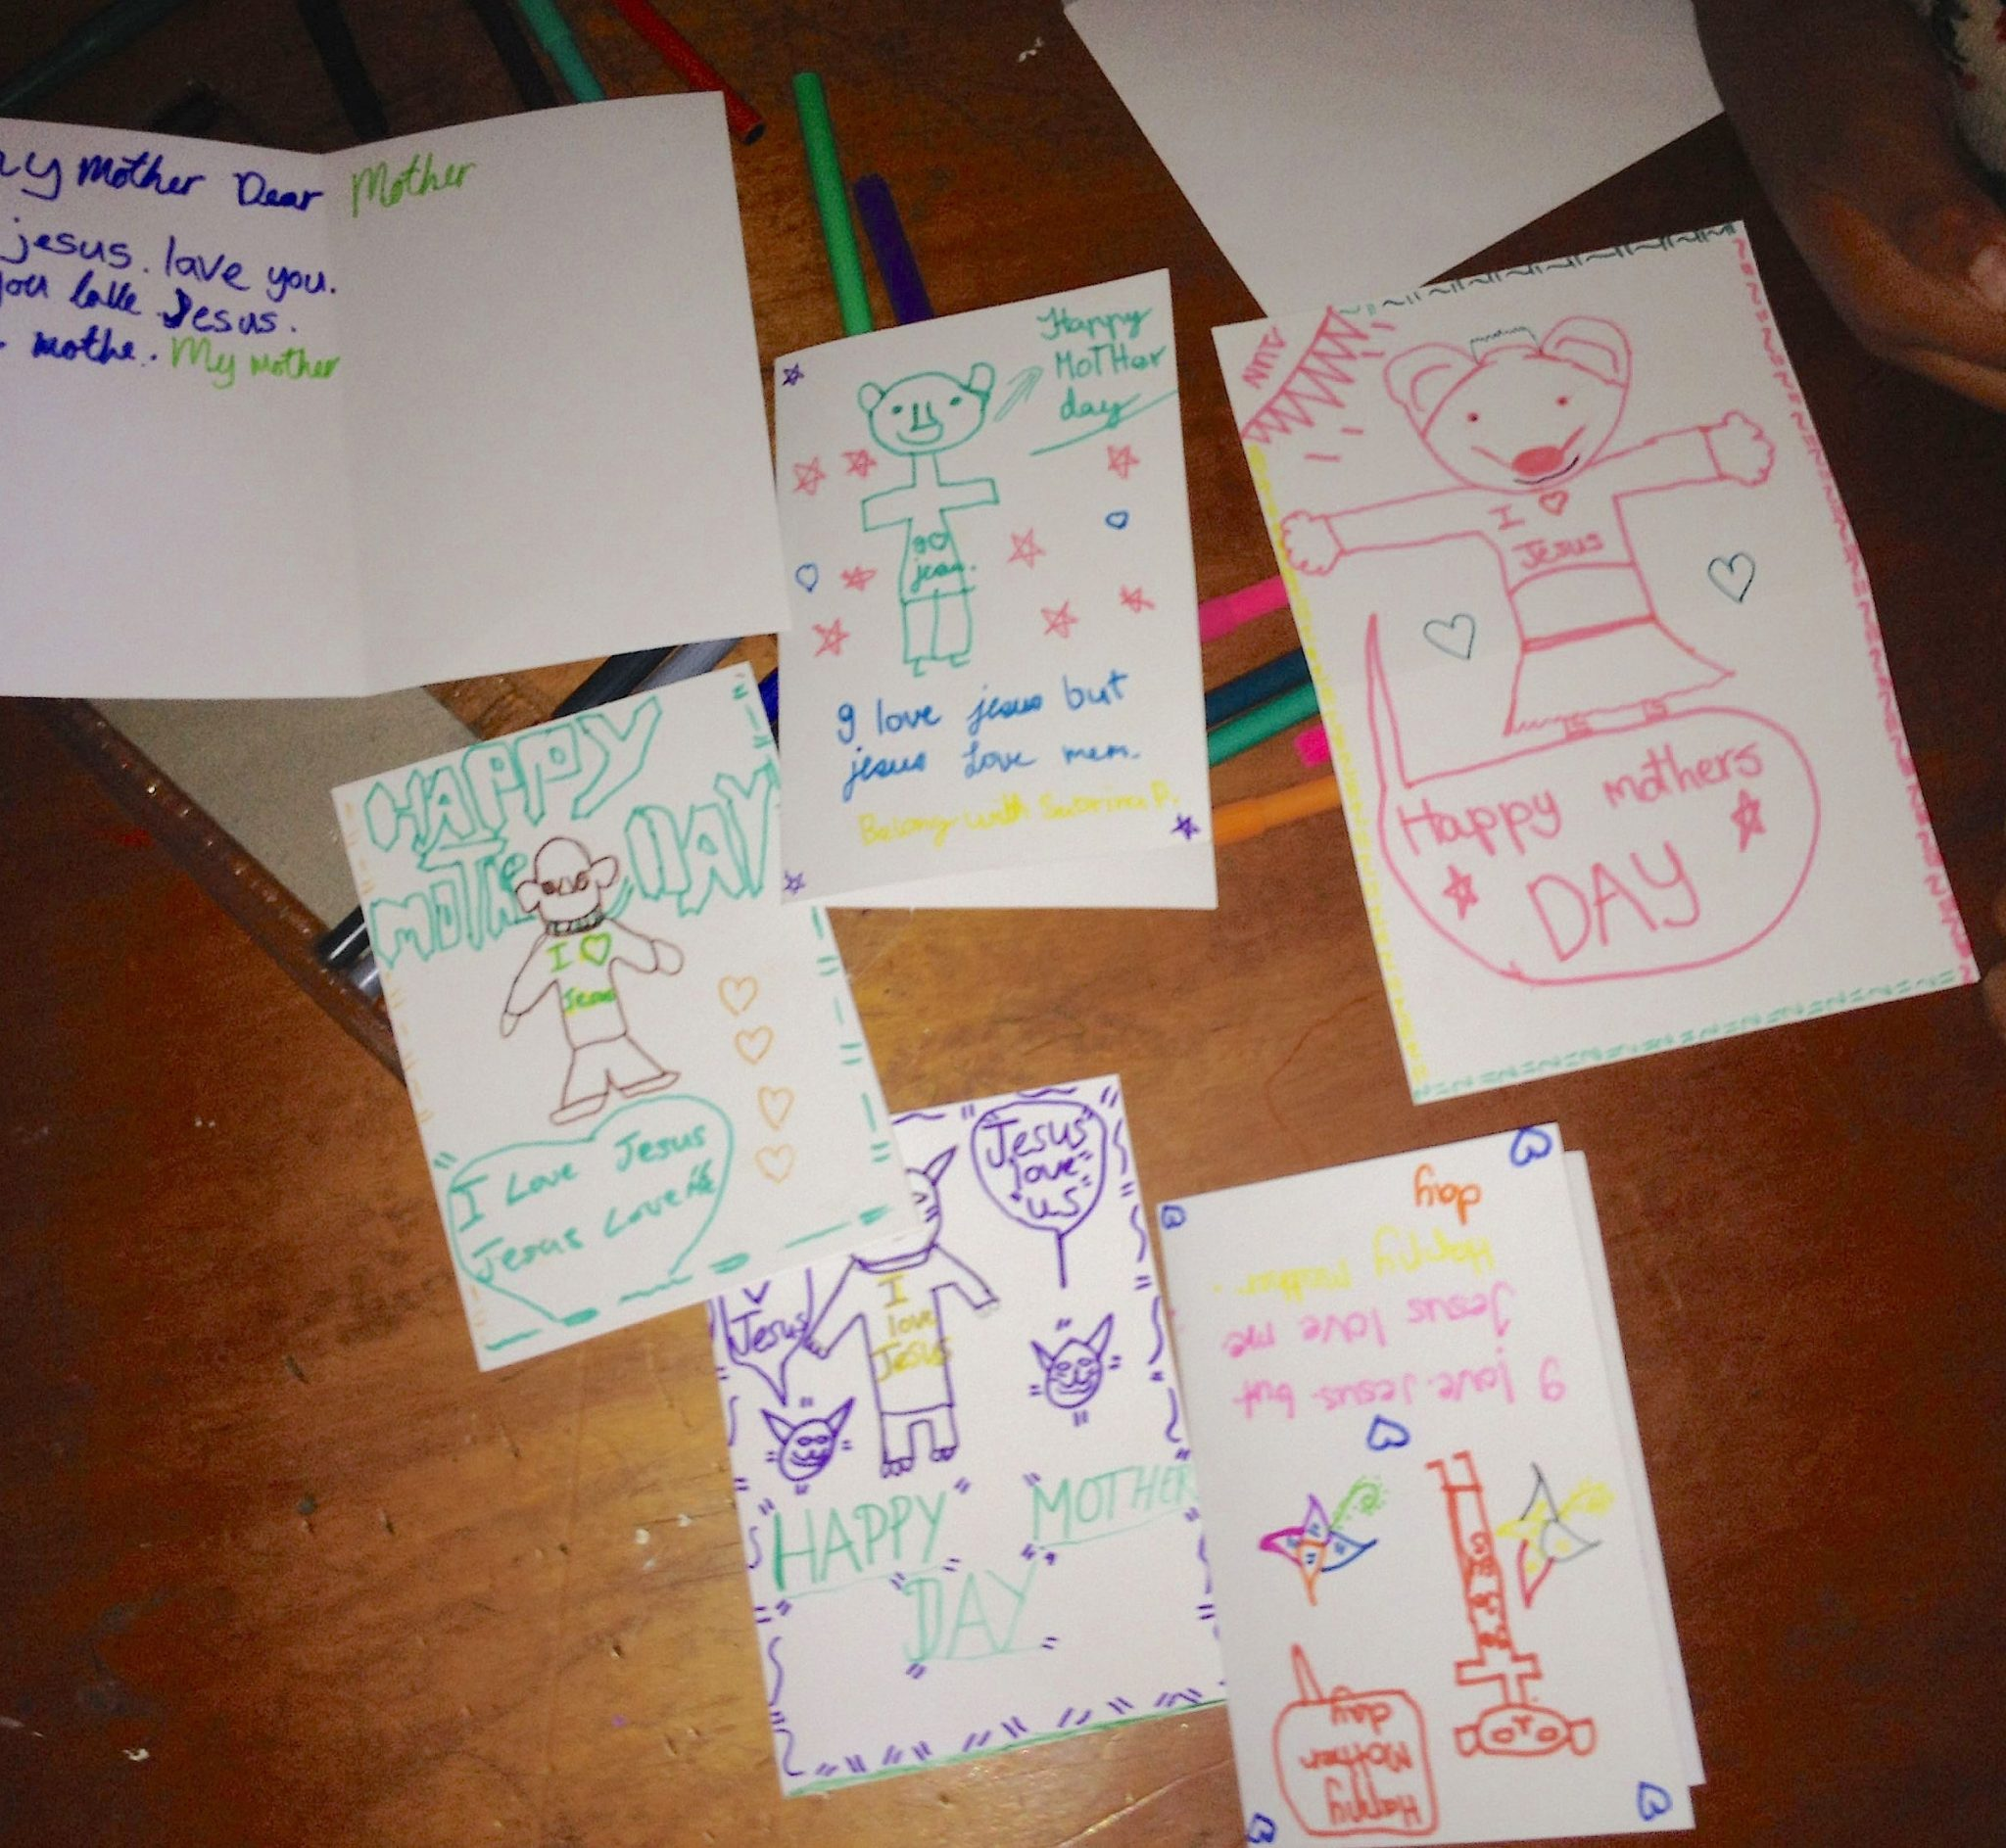 149. A few awesome cards the students made to give to someone, demonstrating their willingness to obey Jesus' most important commandments, to love your God and your neighbor as yourself